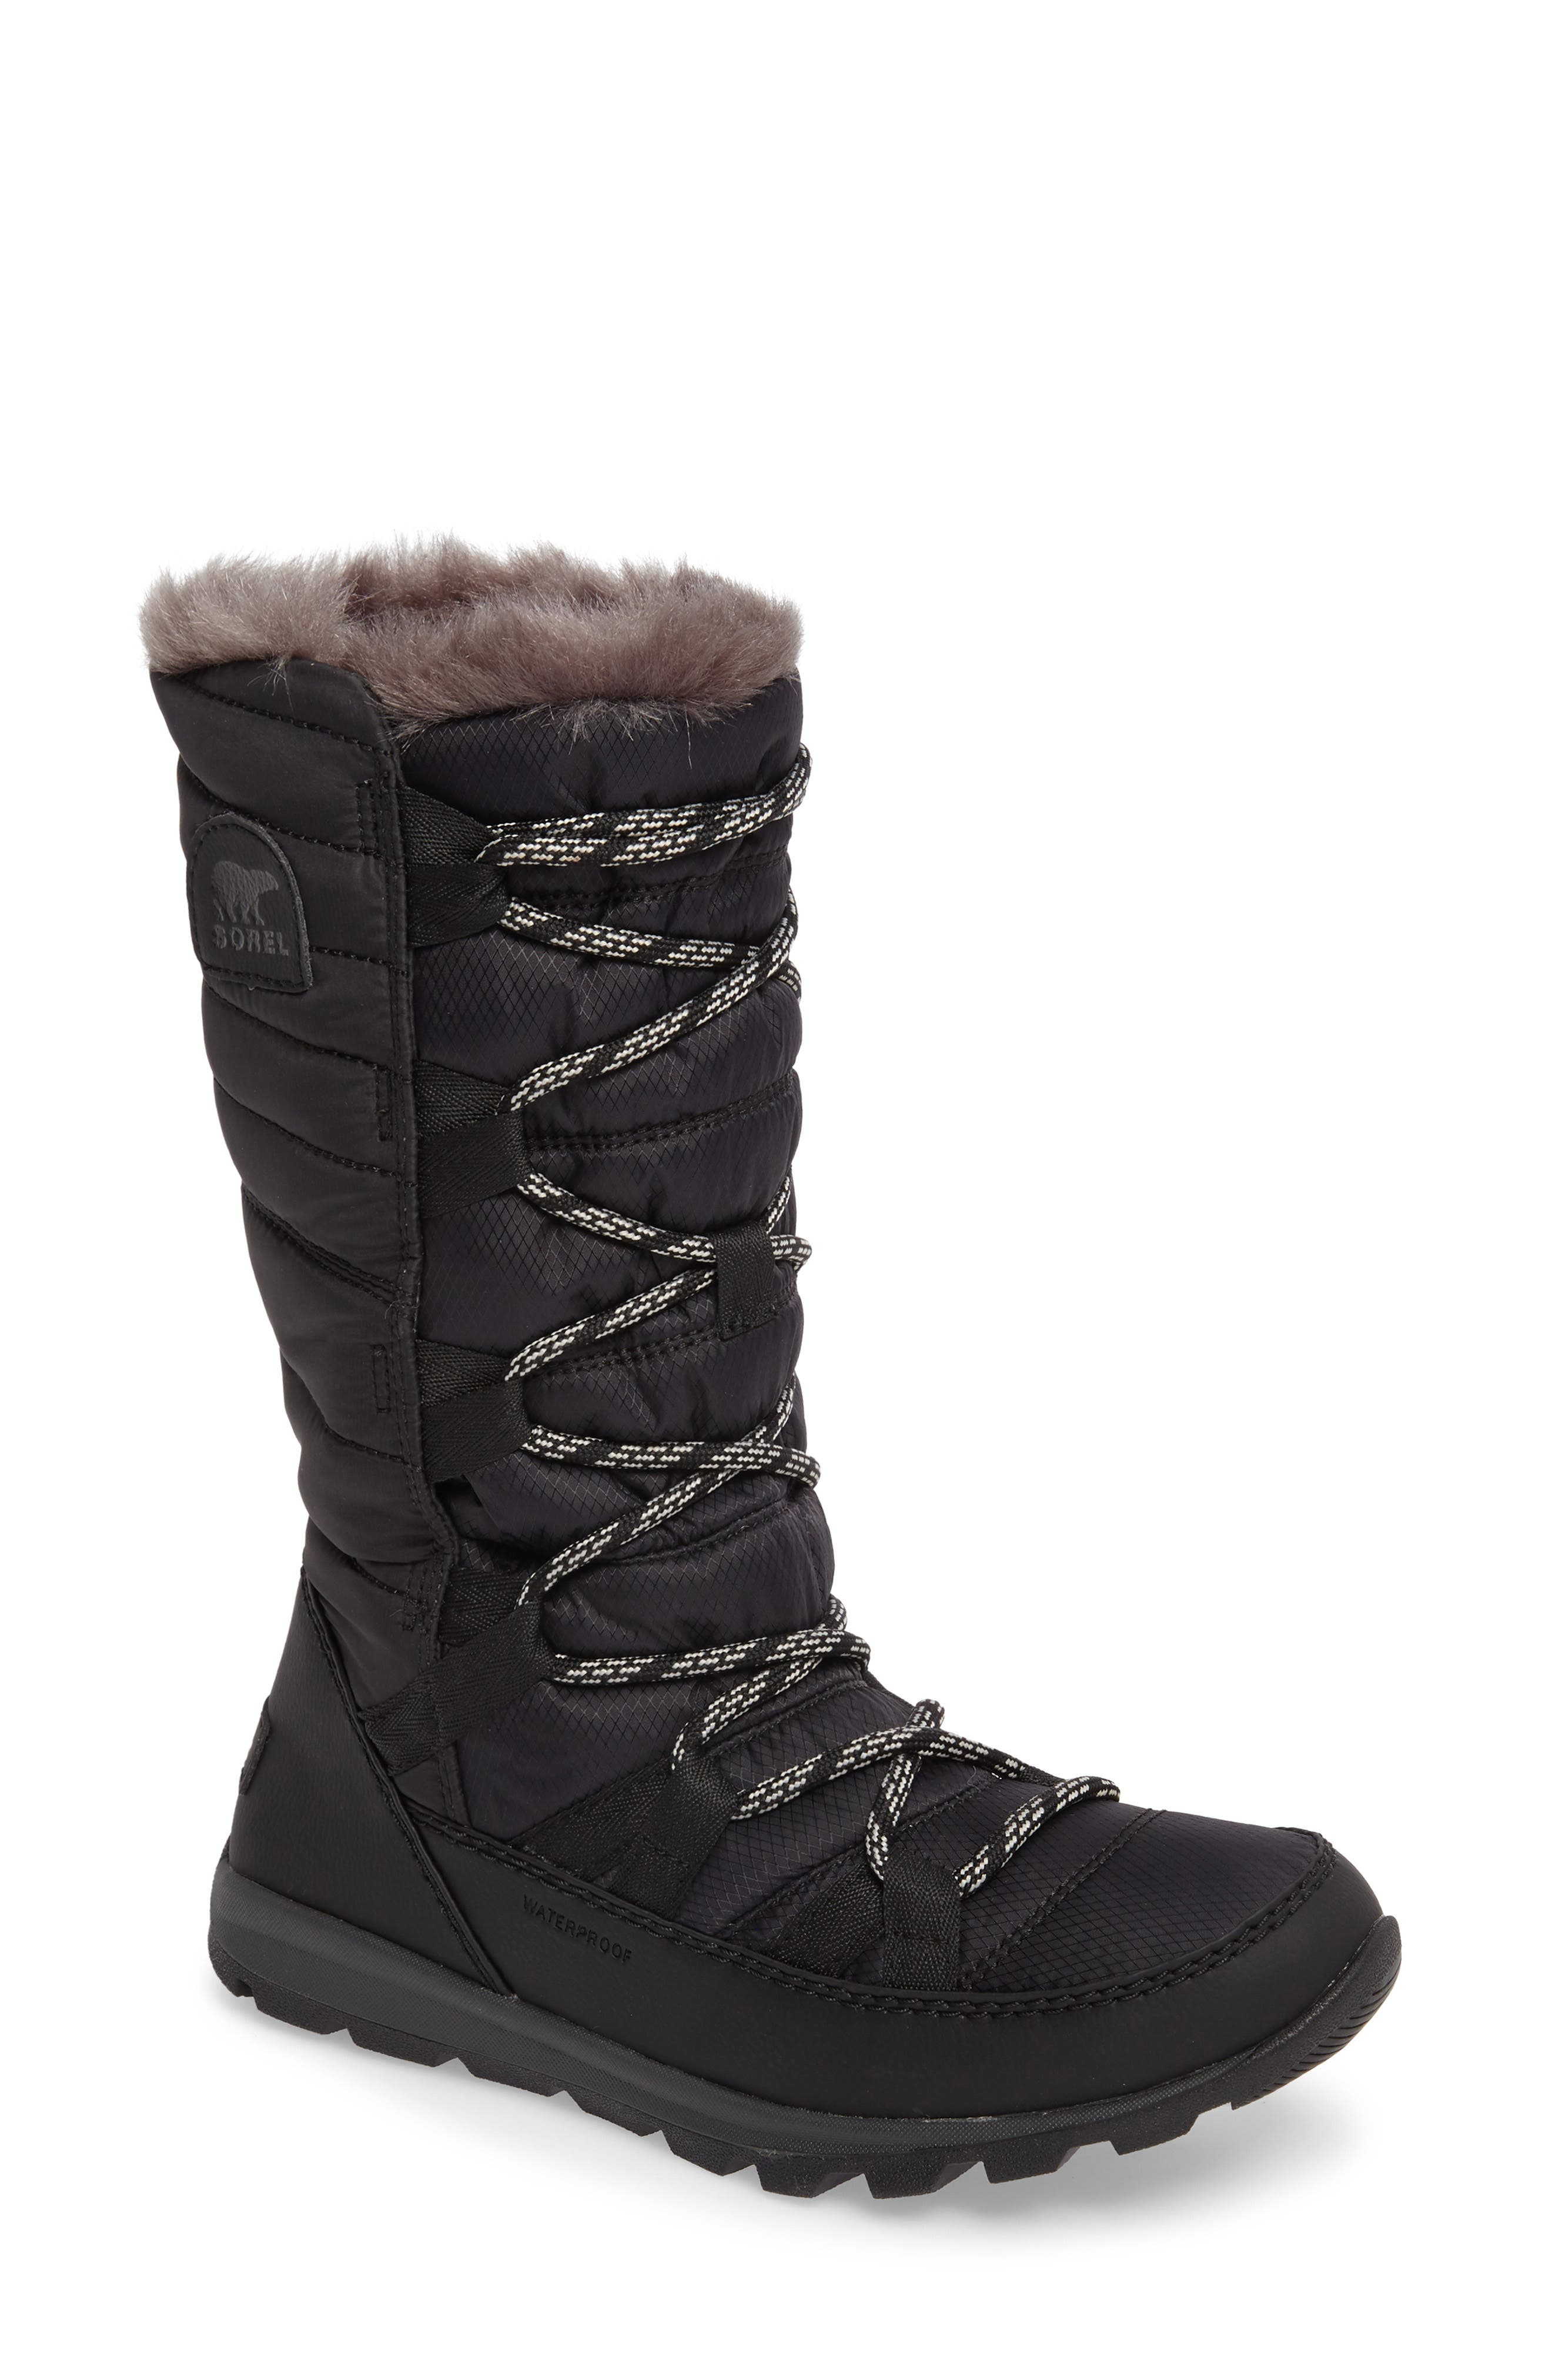 Whitney Snow Boot,                             Main thumbnail 1, color,